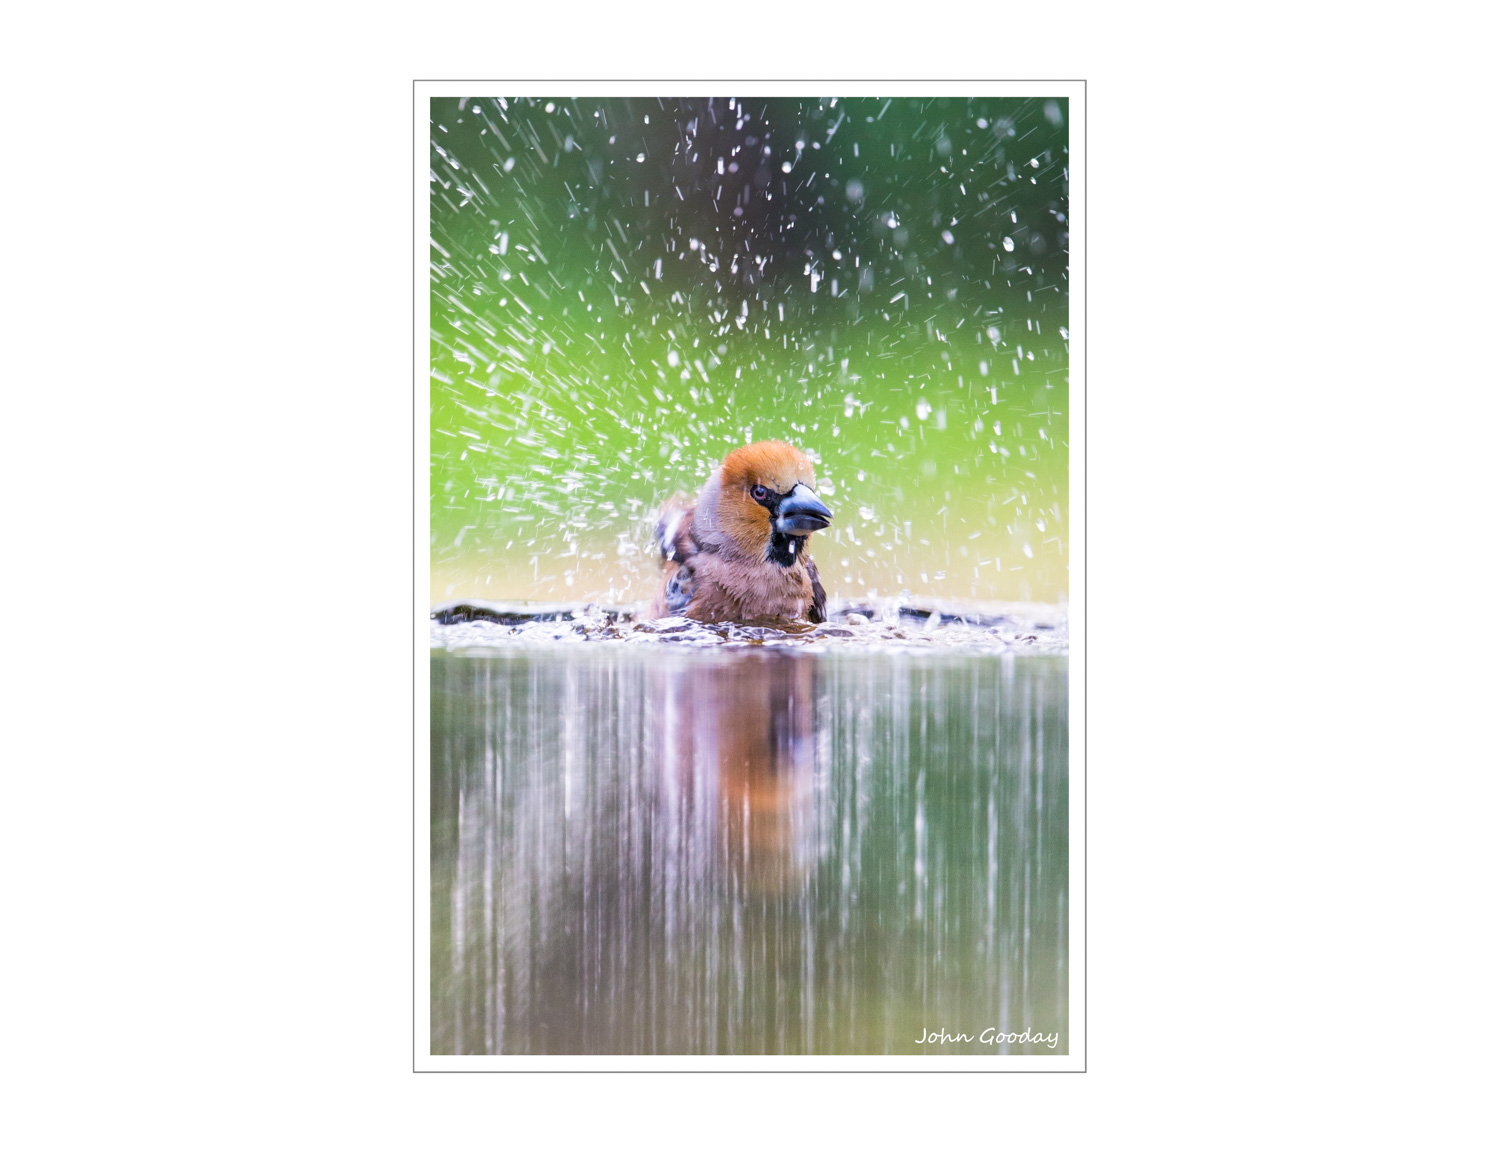 (Image: Hawfinch bathing vigorously. Canon EOS 1DX, EF300mm f/2.8L IS + 1.4x III, 1/320 sec @ f/7.1, ISO 2000, tripod, hide)